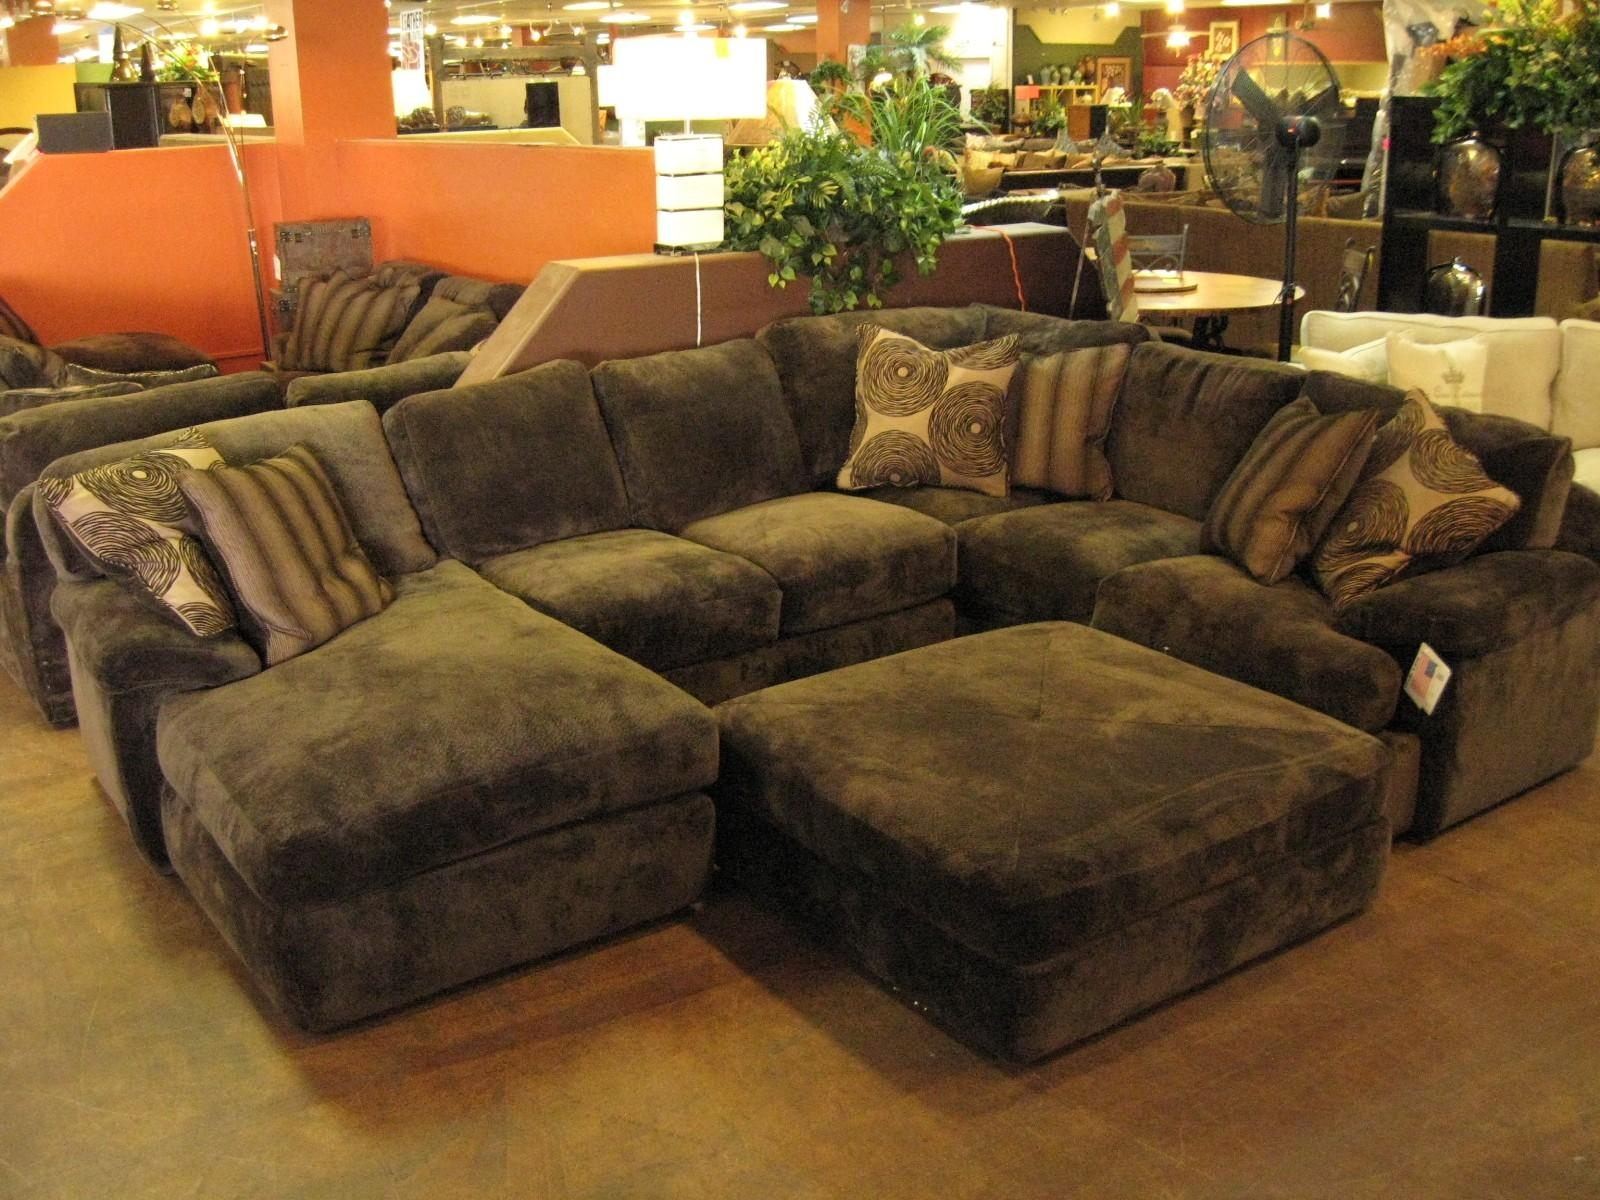 Furniture: Lazy Boy Sectional | Large Sectional Sofas | Amazon Couches Pertaining To Lazyboy Sectional Sofas (View 17 of 20)